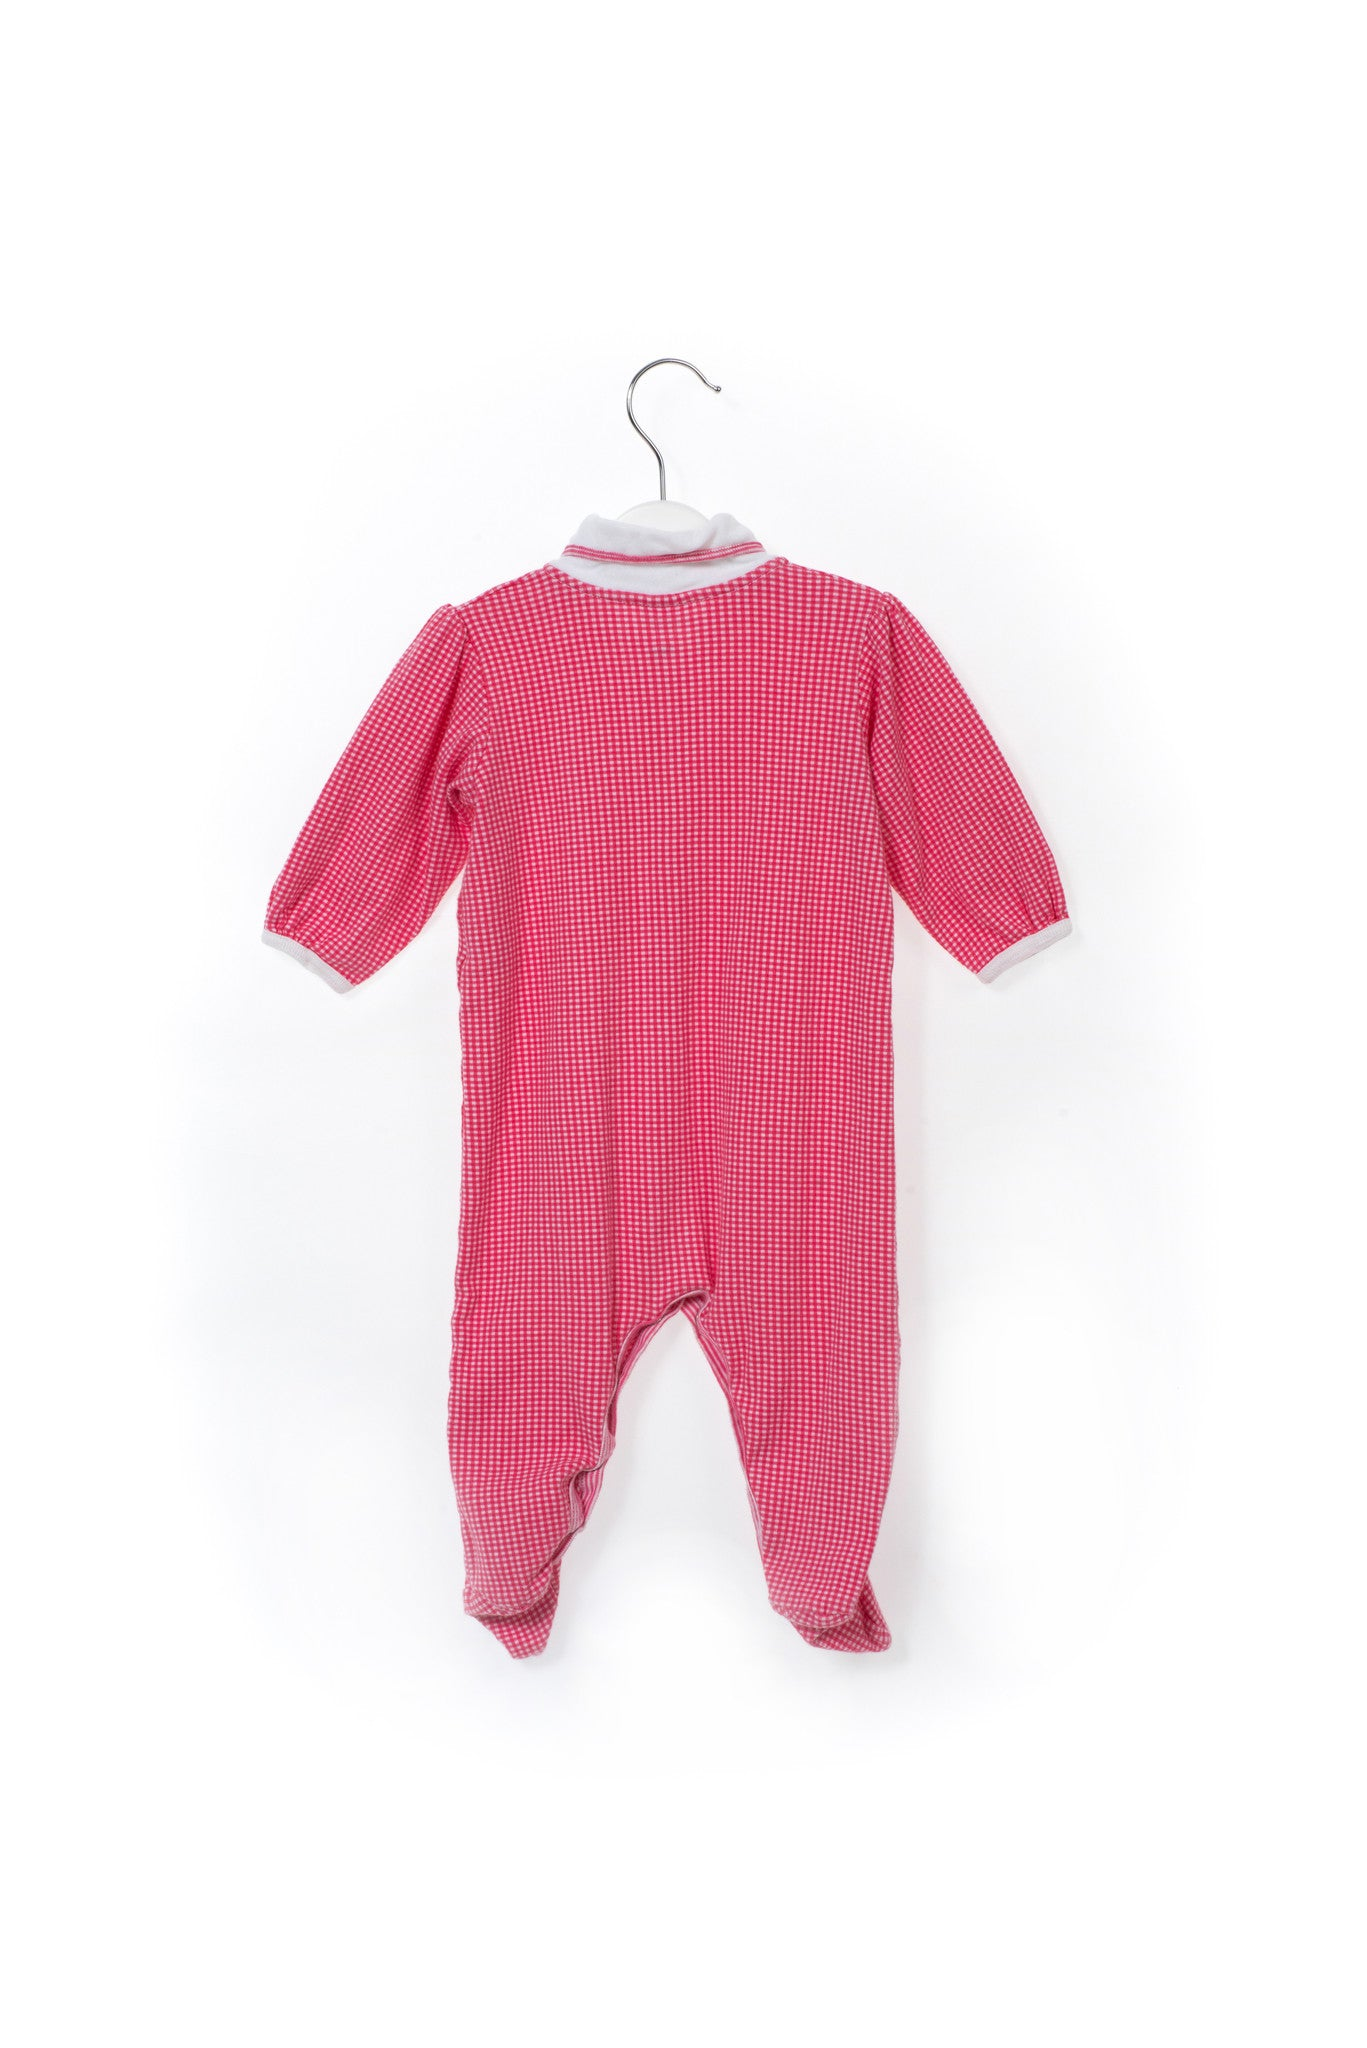 Jumpsuit 3-6M, Petit Bateau at Retykle - Online Baby & Kids Clothing Up to 90% Off